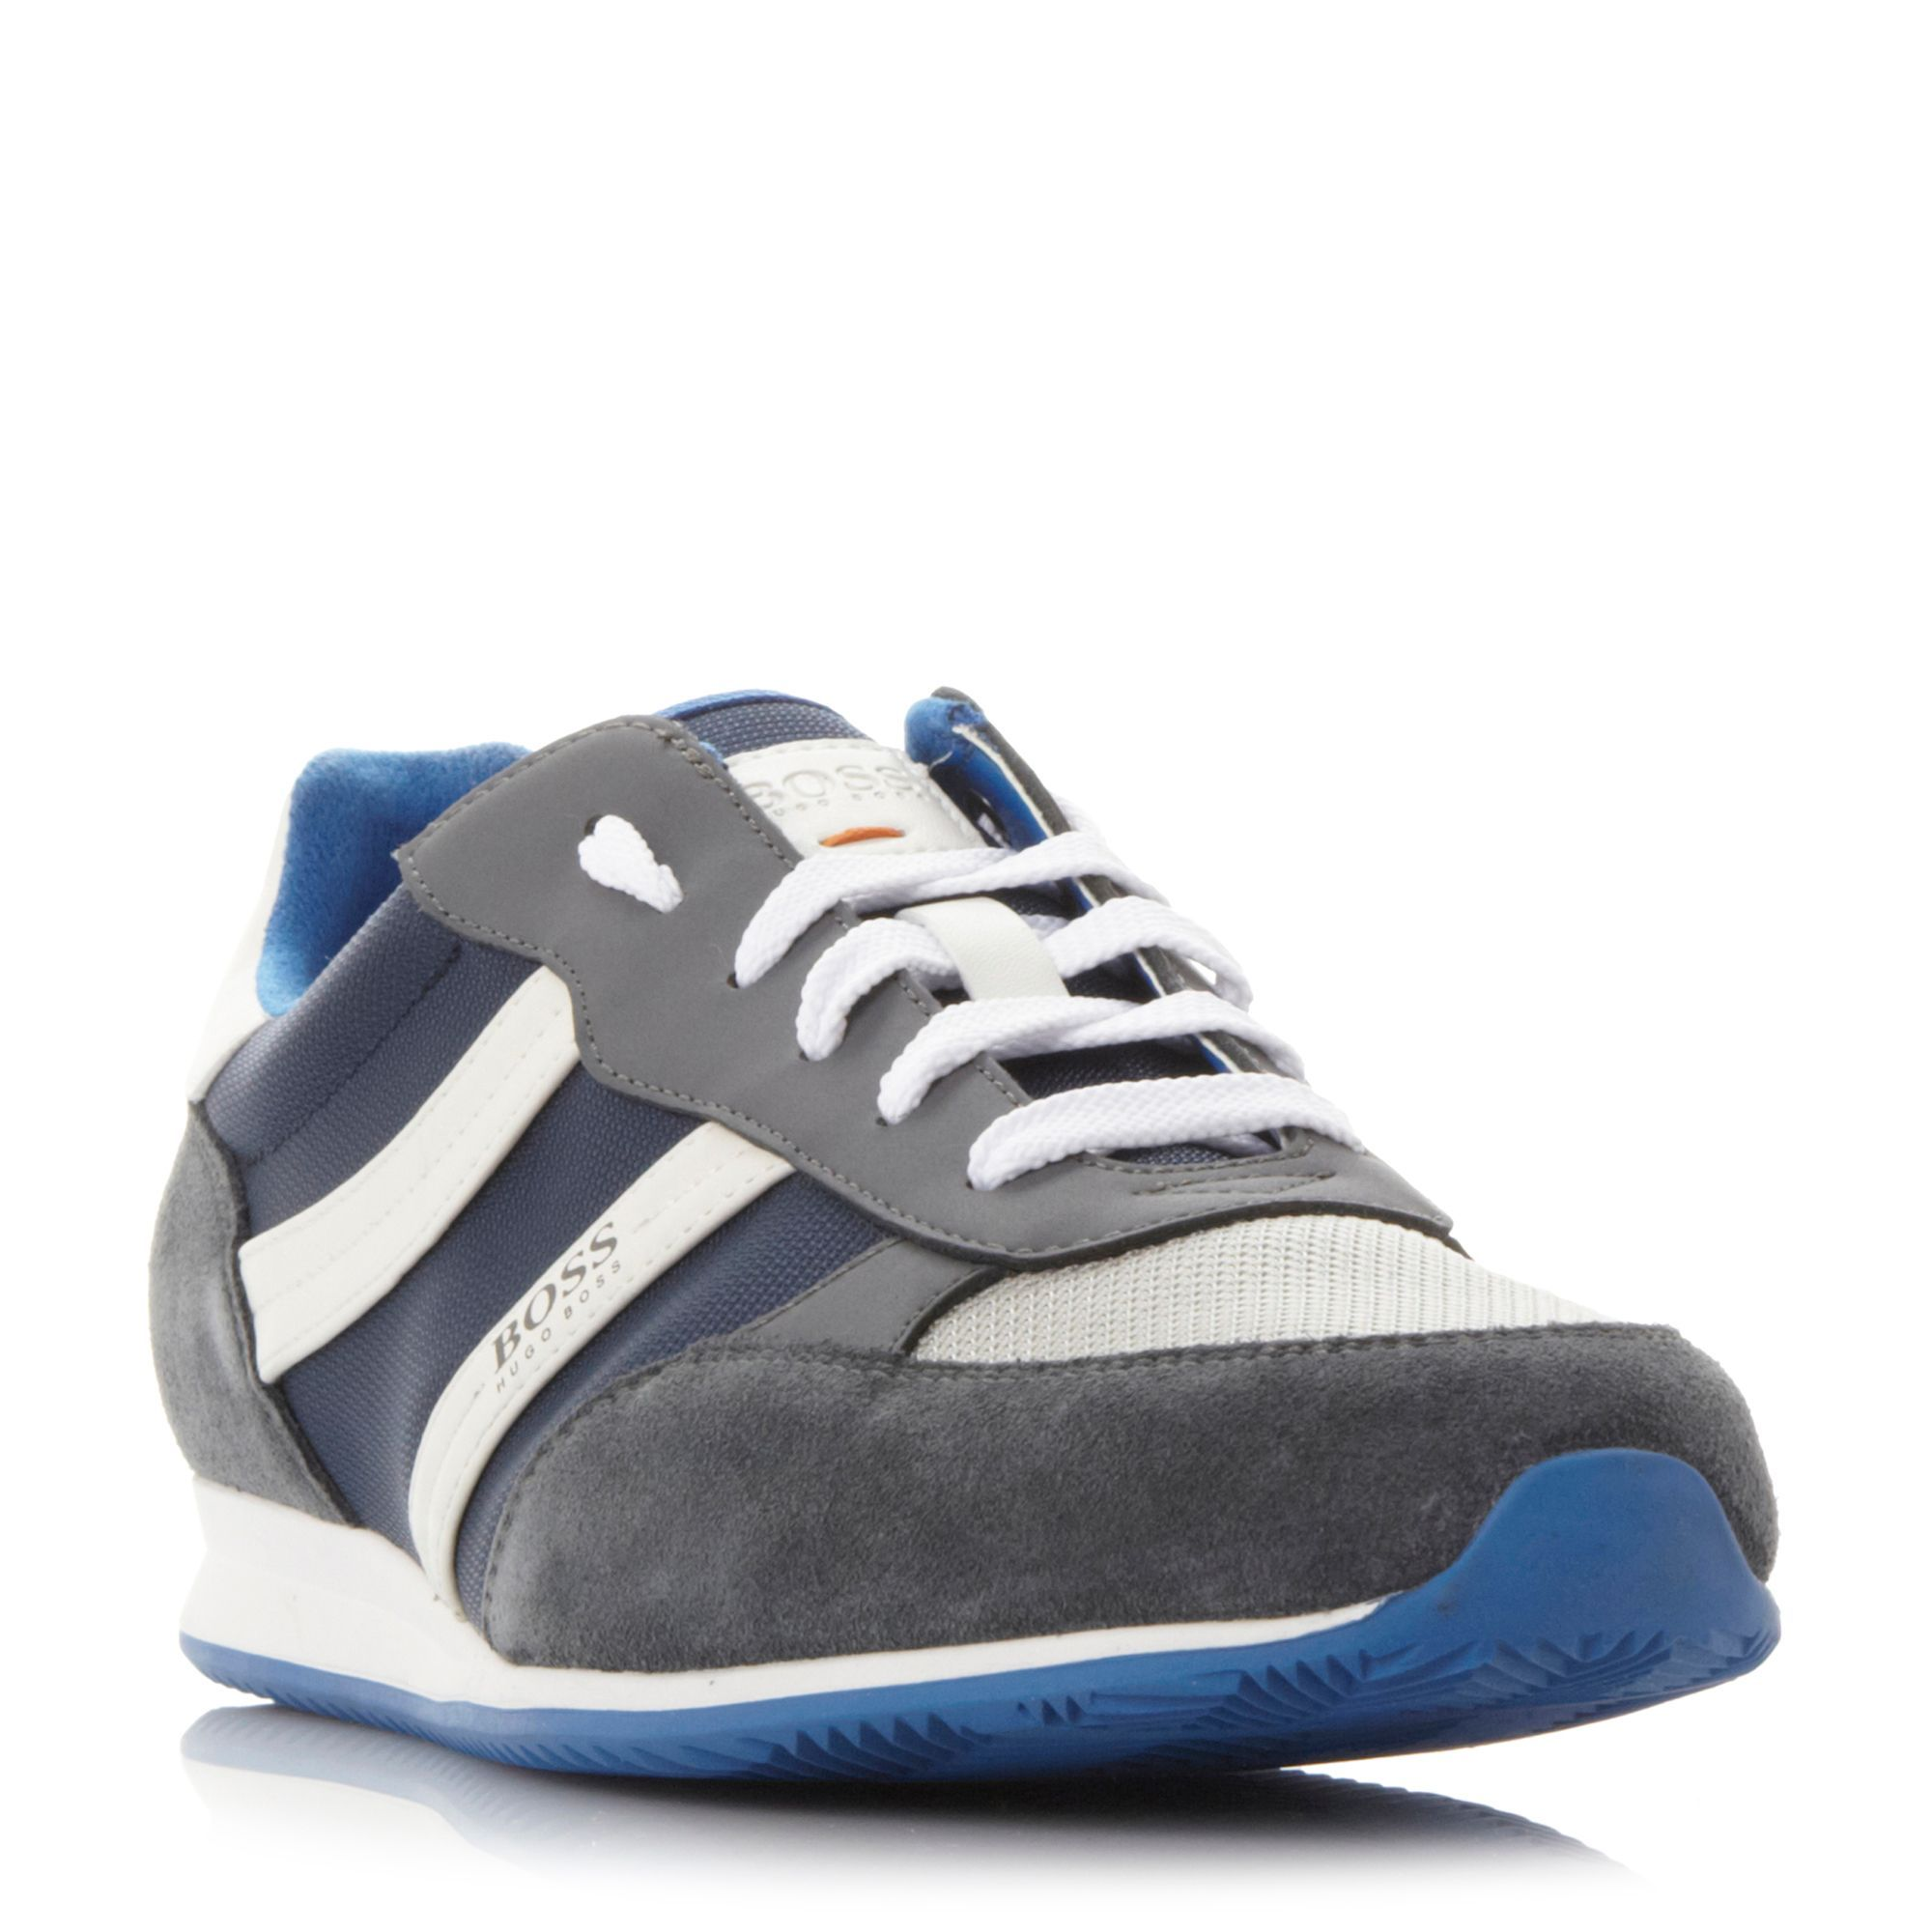 Hugo Boss Oryl colour pop mixed material trainers, Navy